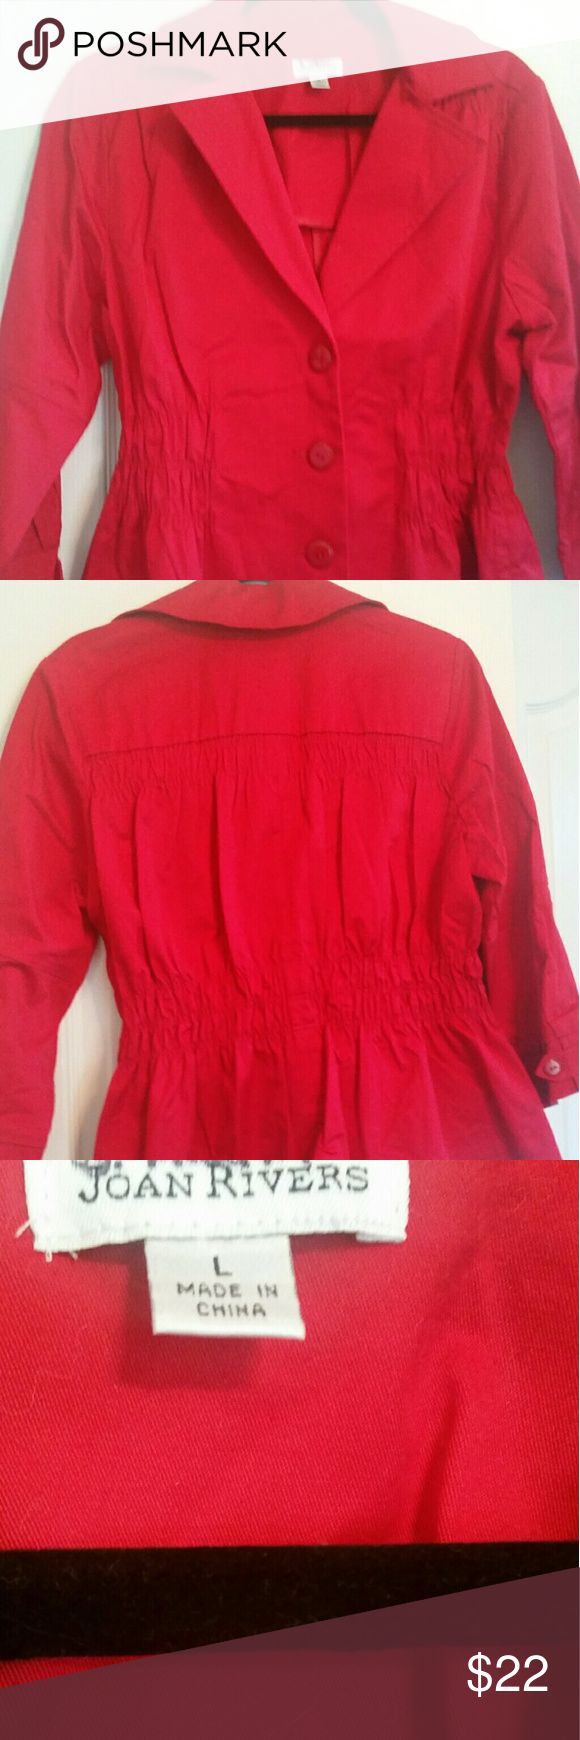 Super cute bright red cotton short trench coat 3/4 length sleeves. Joan Rivers Jackets & Coats